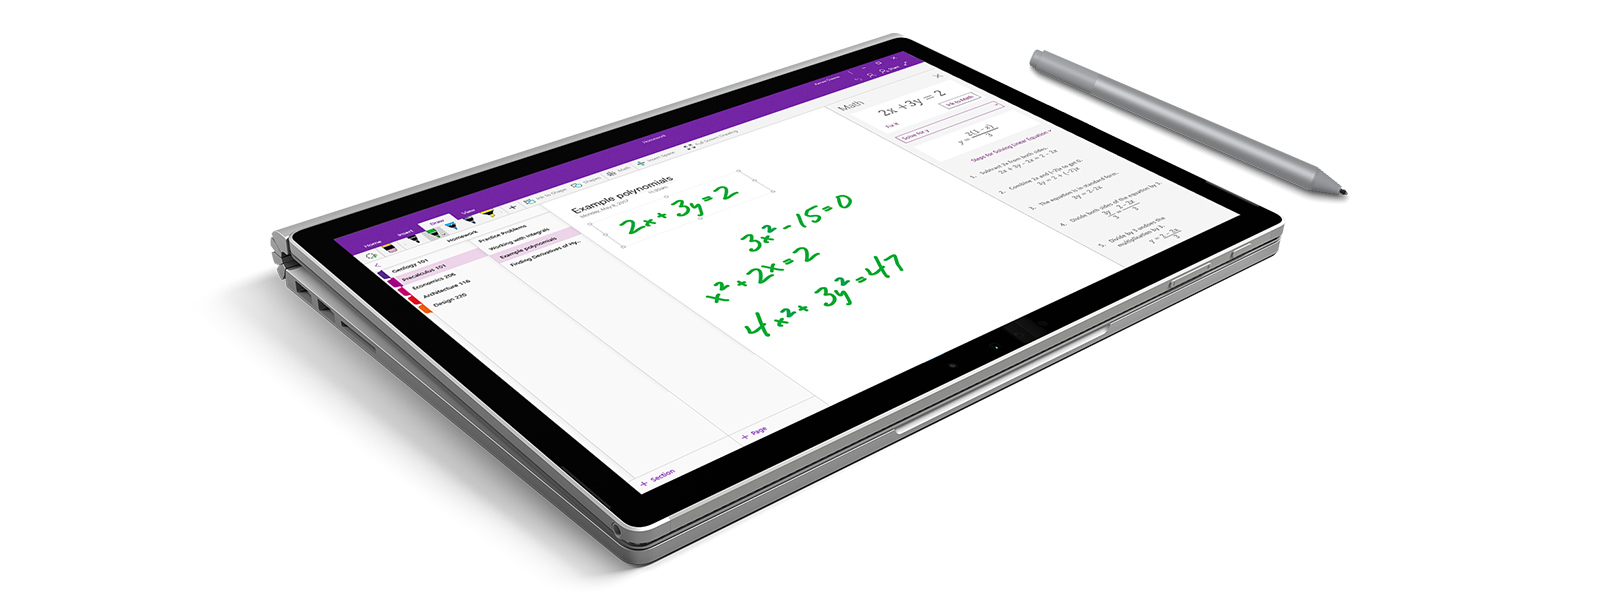 OneNote screen shot showing the Ink Maths Assistant